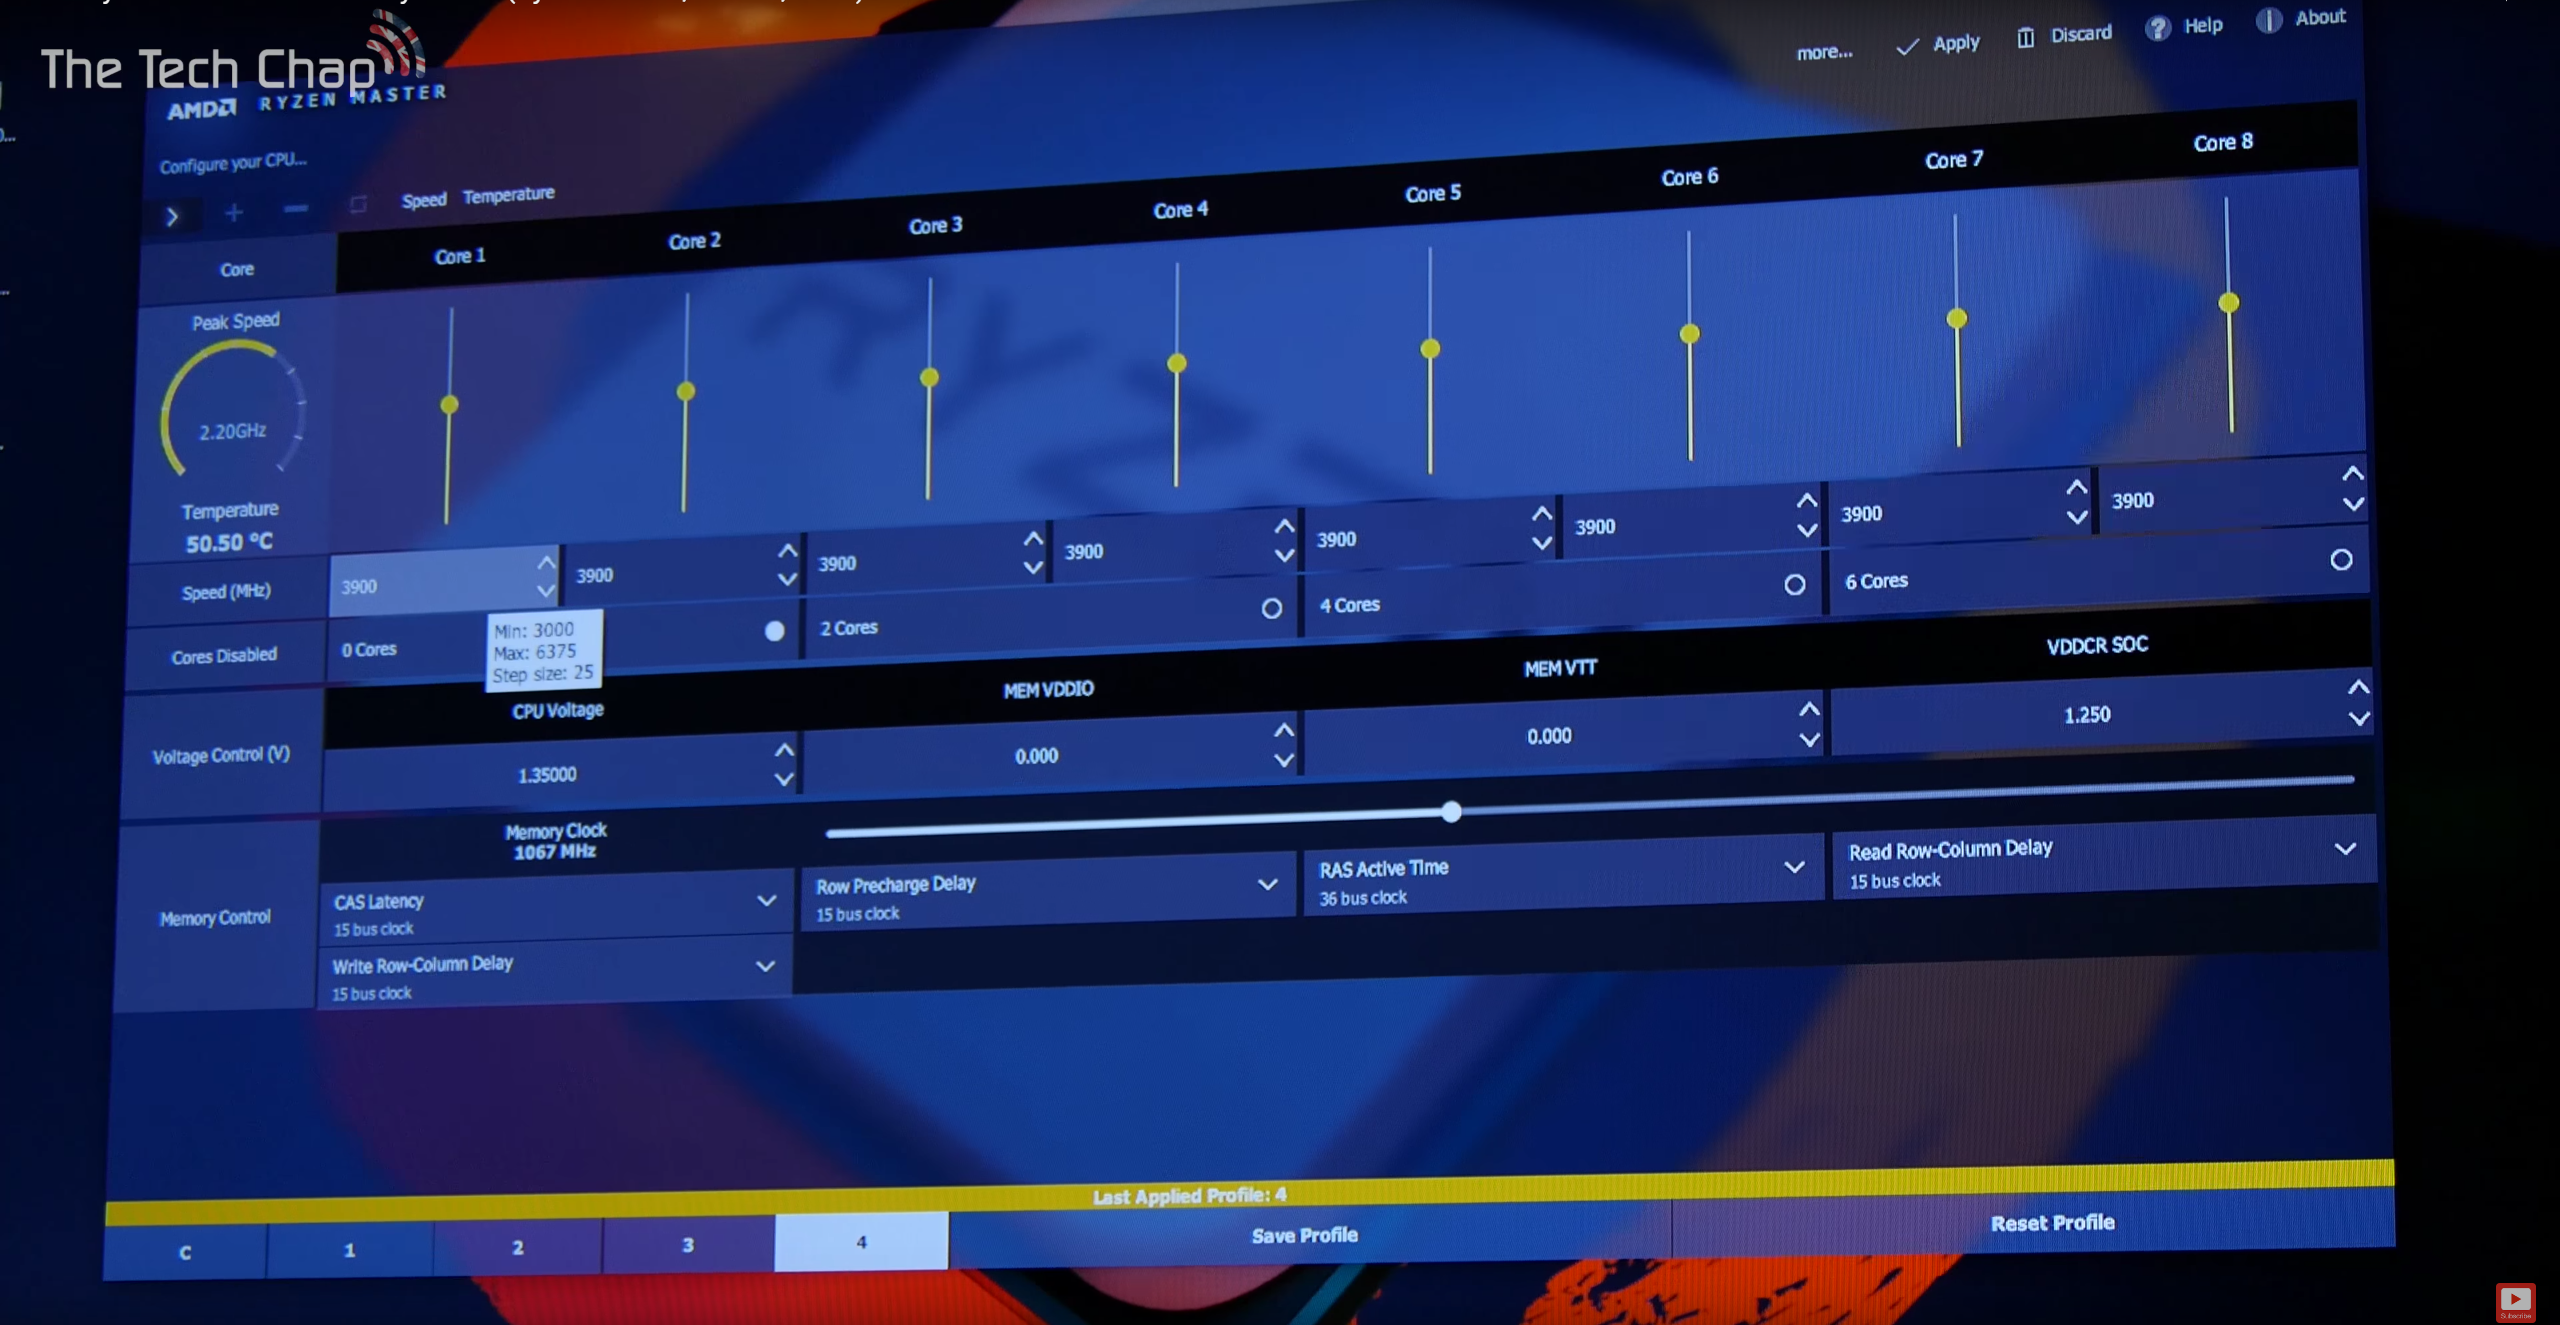 AMD Ryzen 7 1700 Overclocked To 4GHz On All 8 Cores